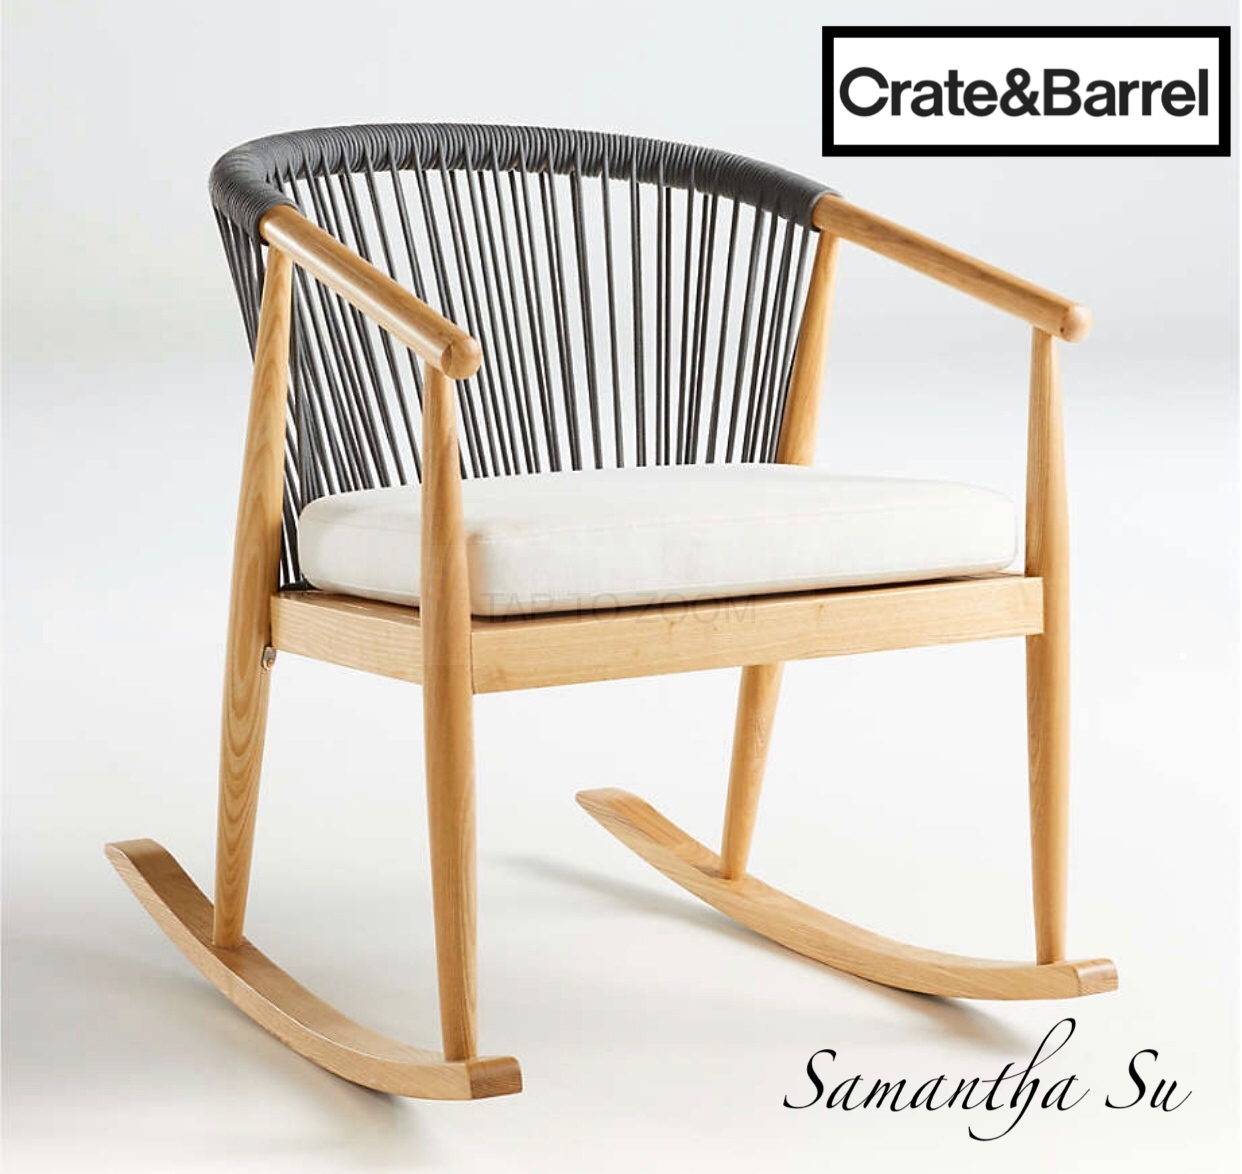 【Crate and Barrel】高級家具★ロッキングチェア (Crate & Barrel/椅子・チェア) 61223312